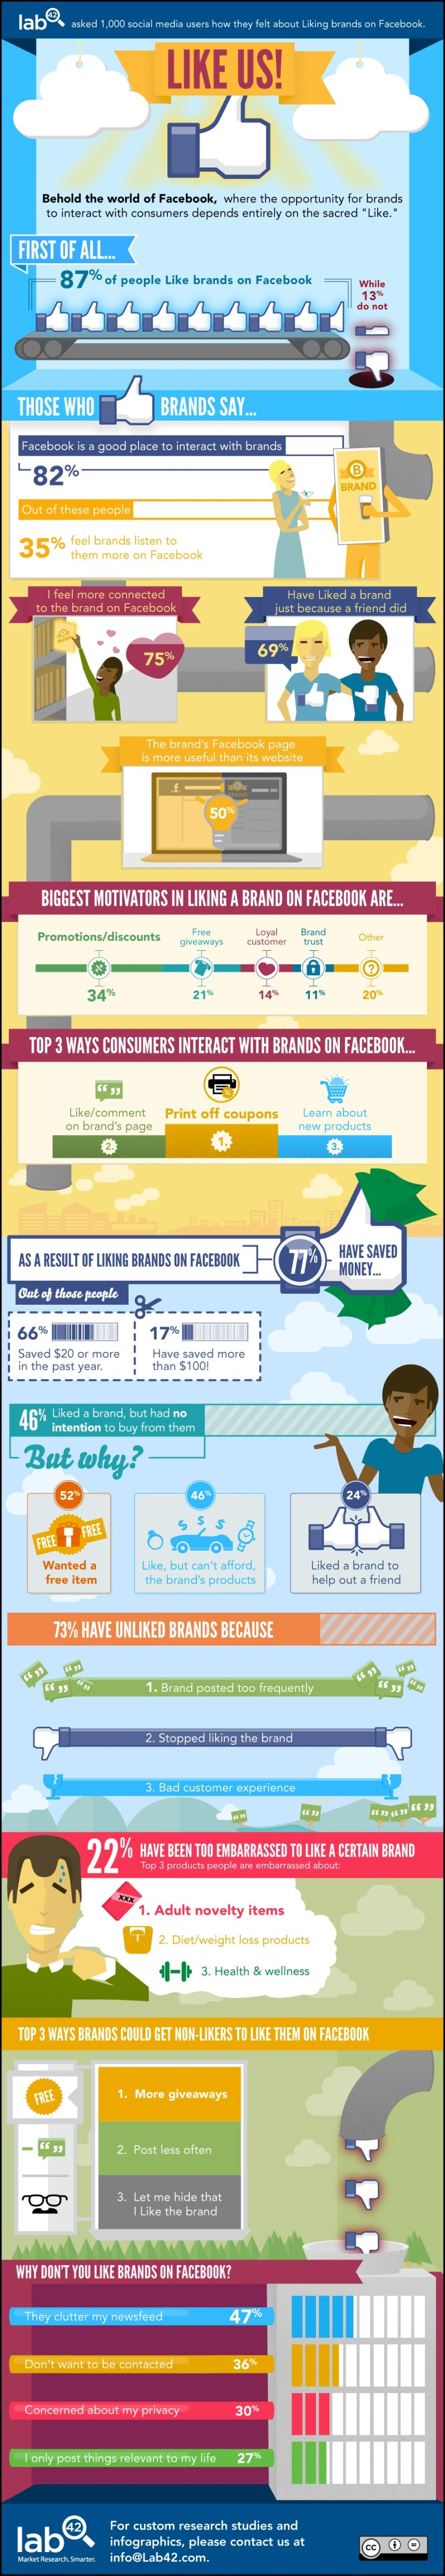 Infographic - The Psychology Of Liking Brands